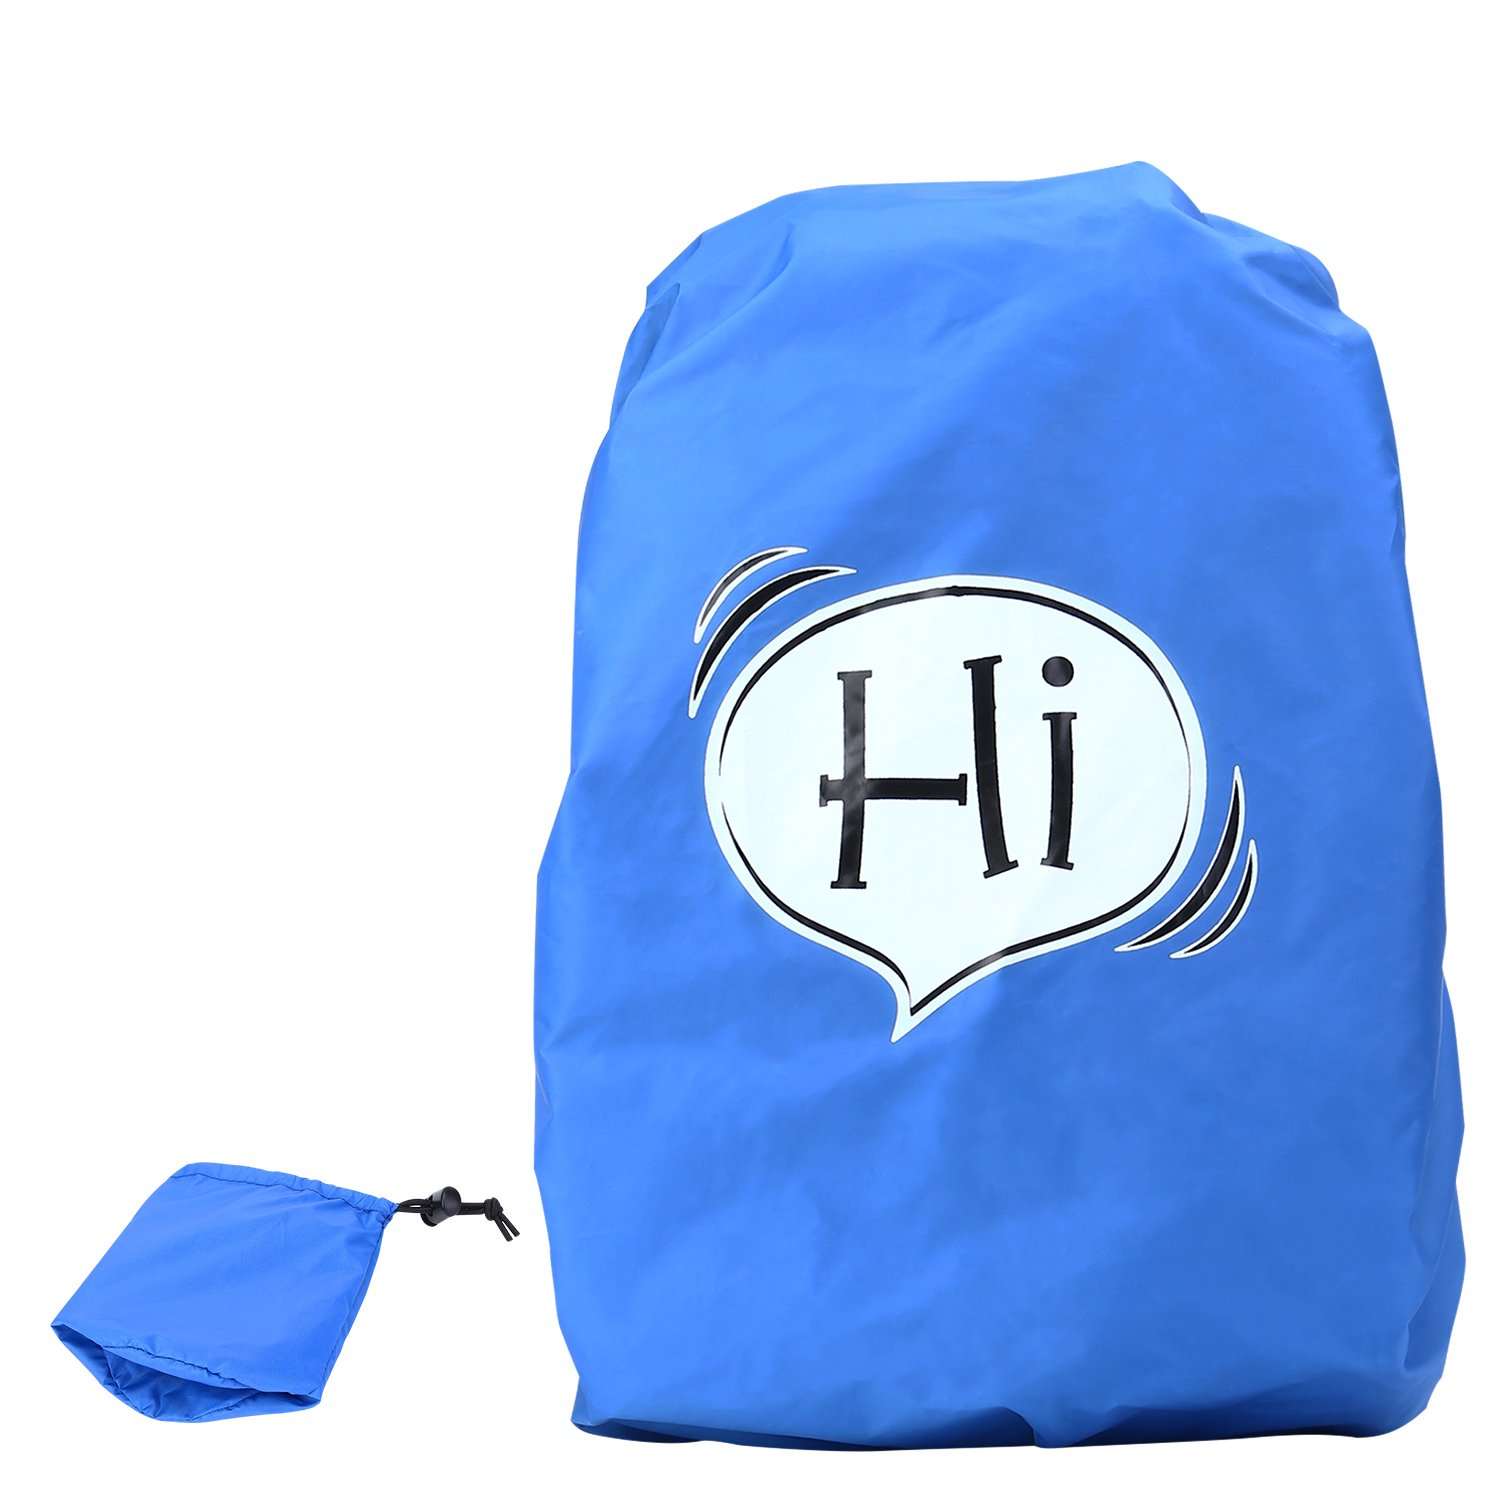 NONMON Waterproof Rain Cover for 30L/40L Hiking Backpack School Backpack Blue